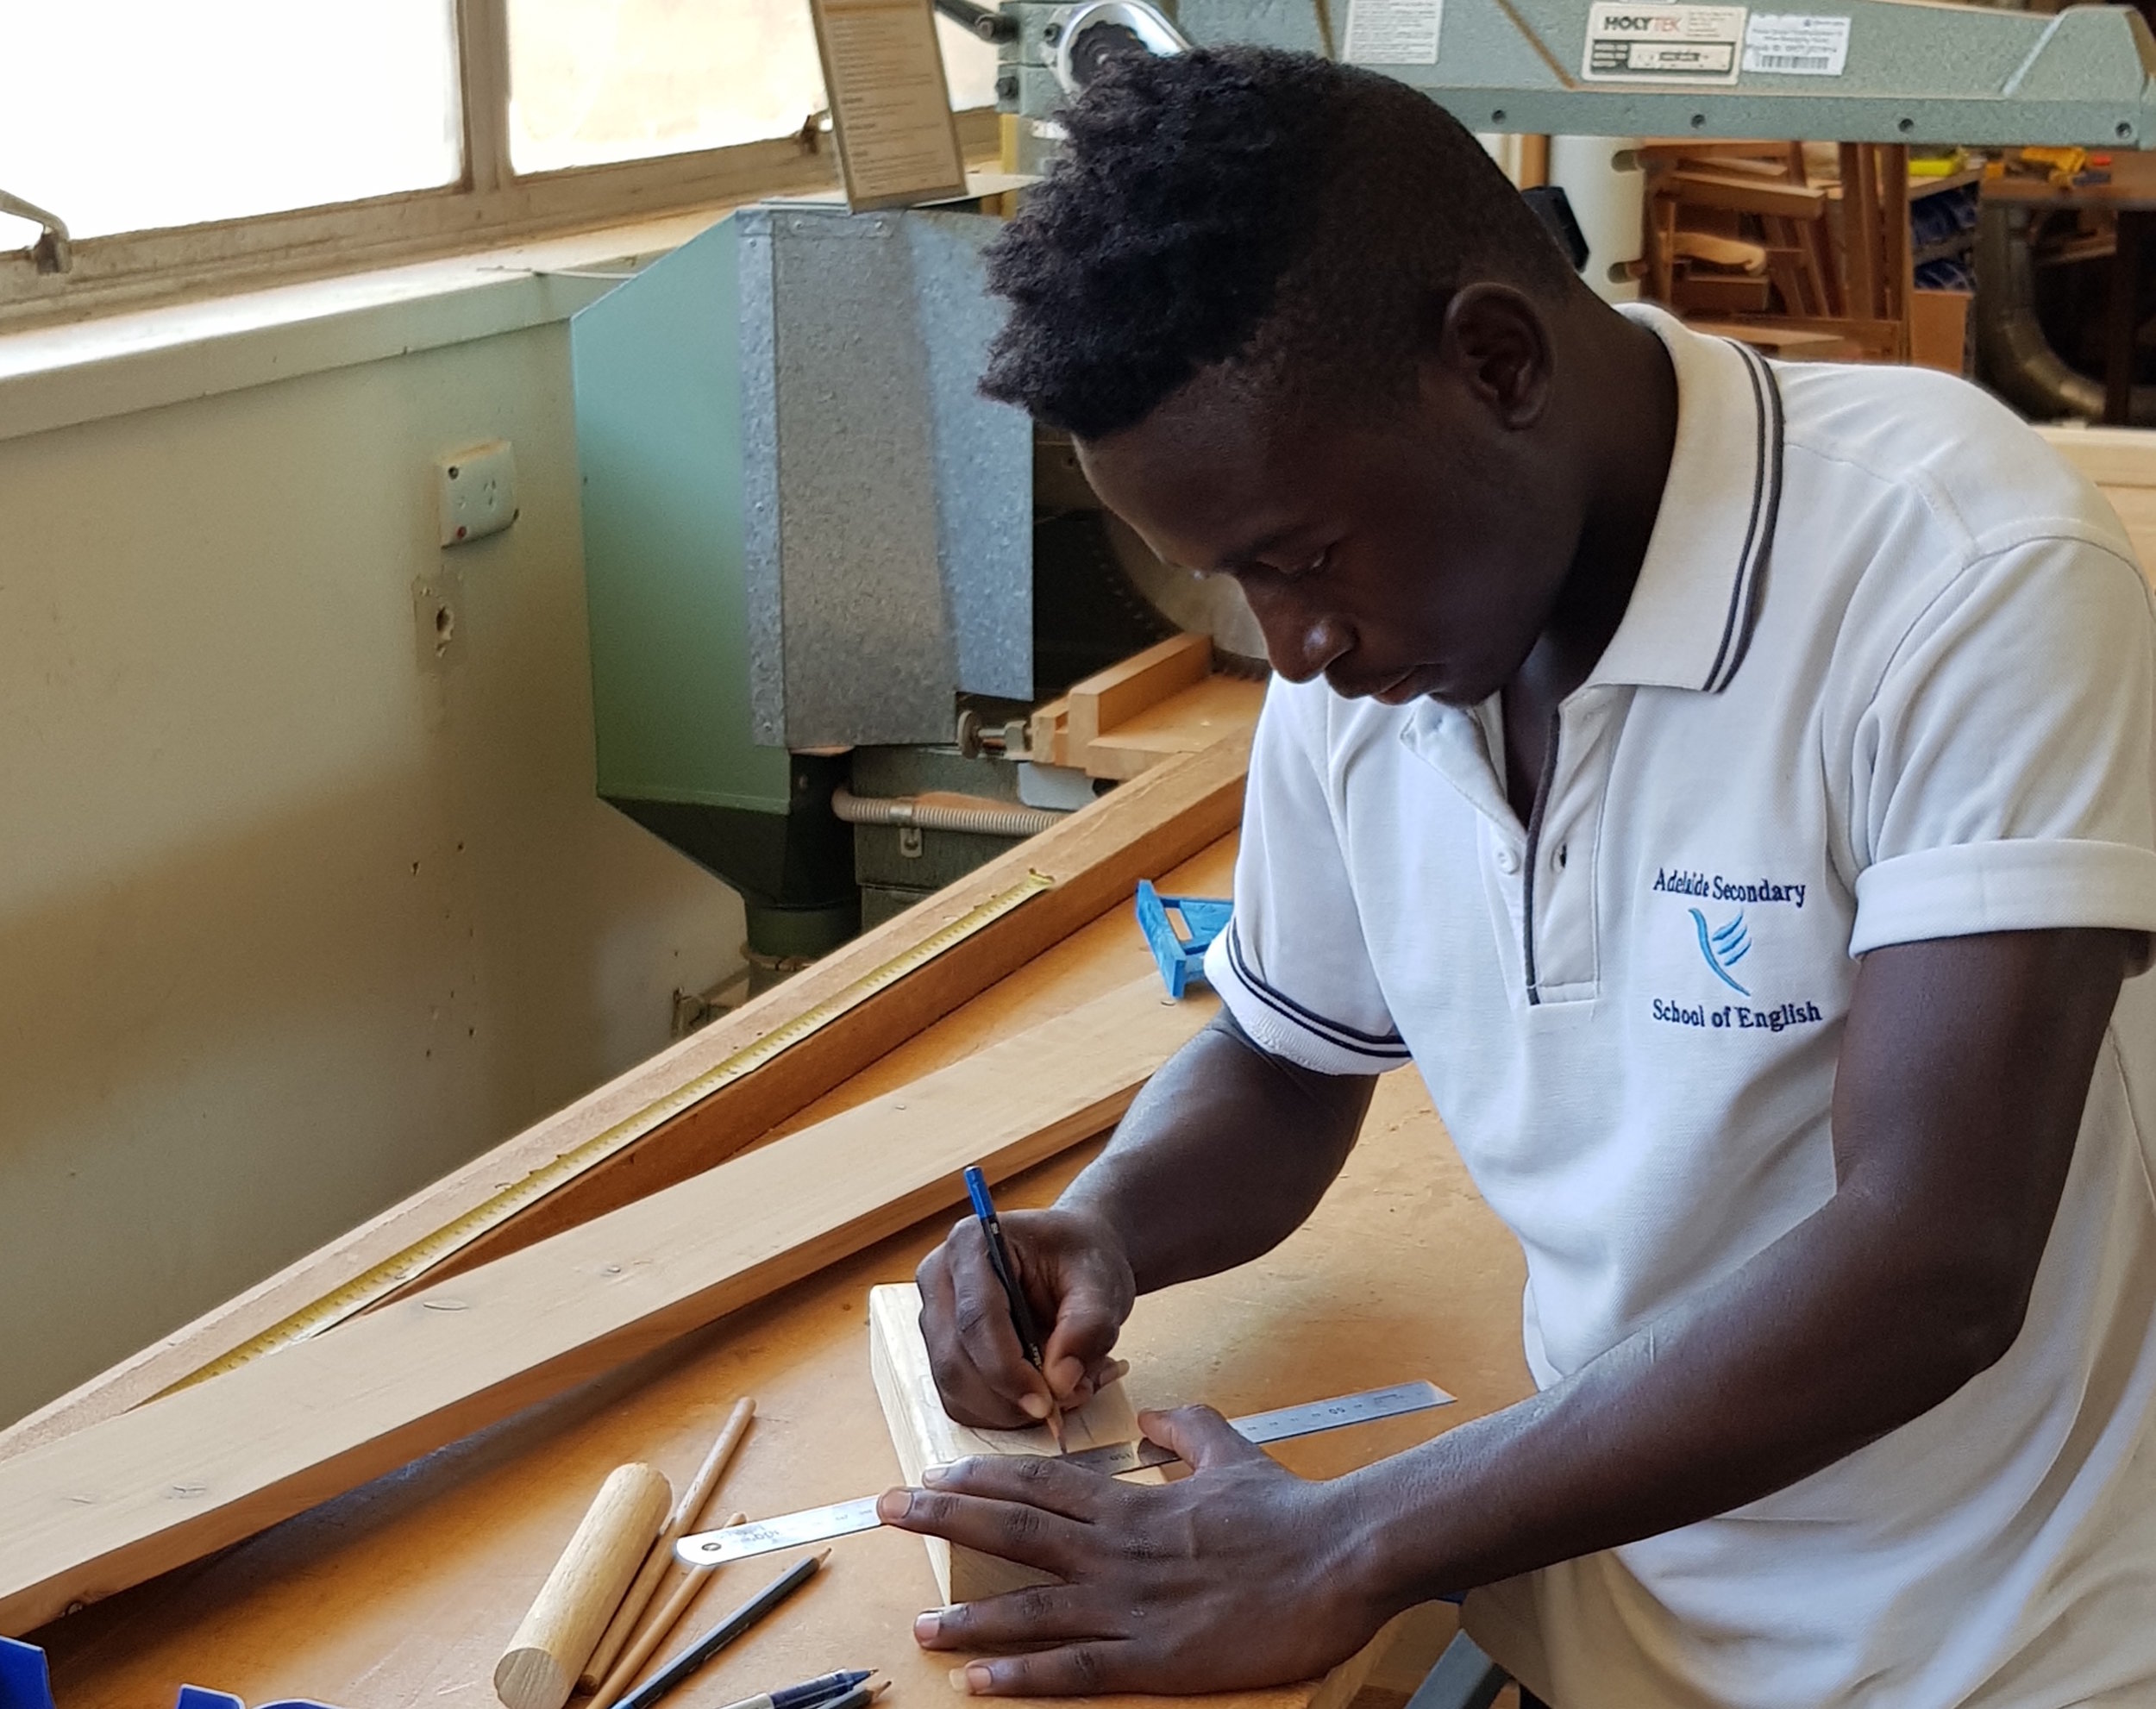 a student working in the school's tech studies facilities